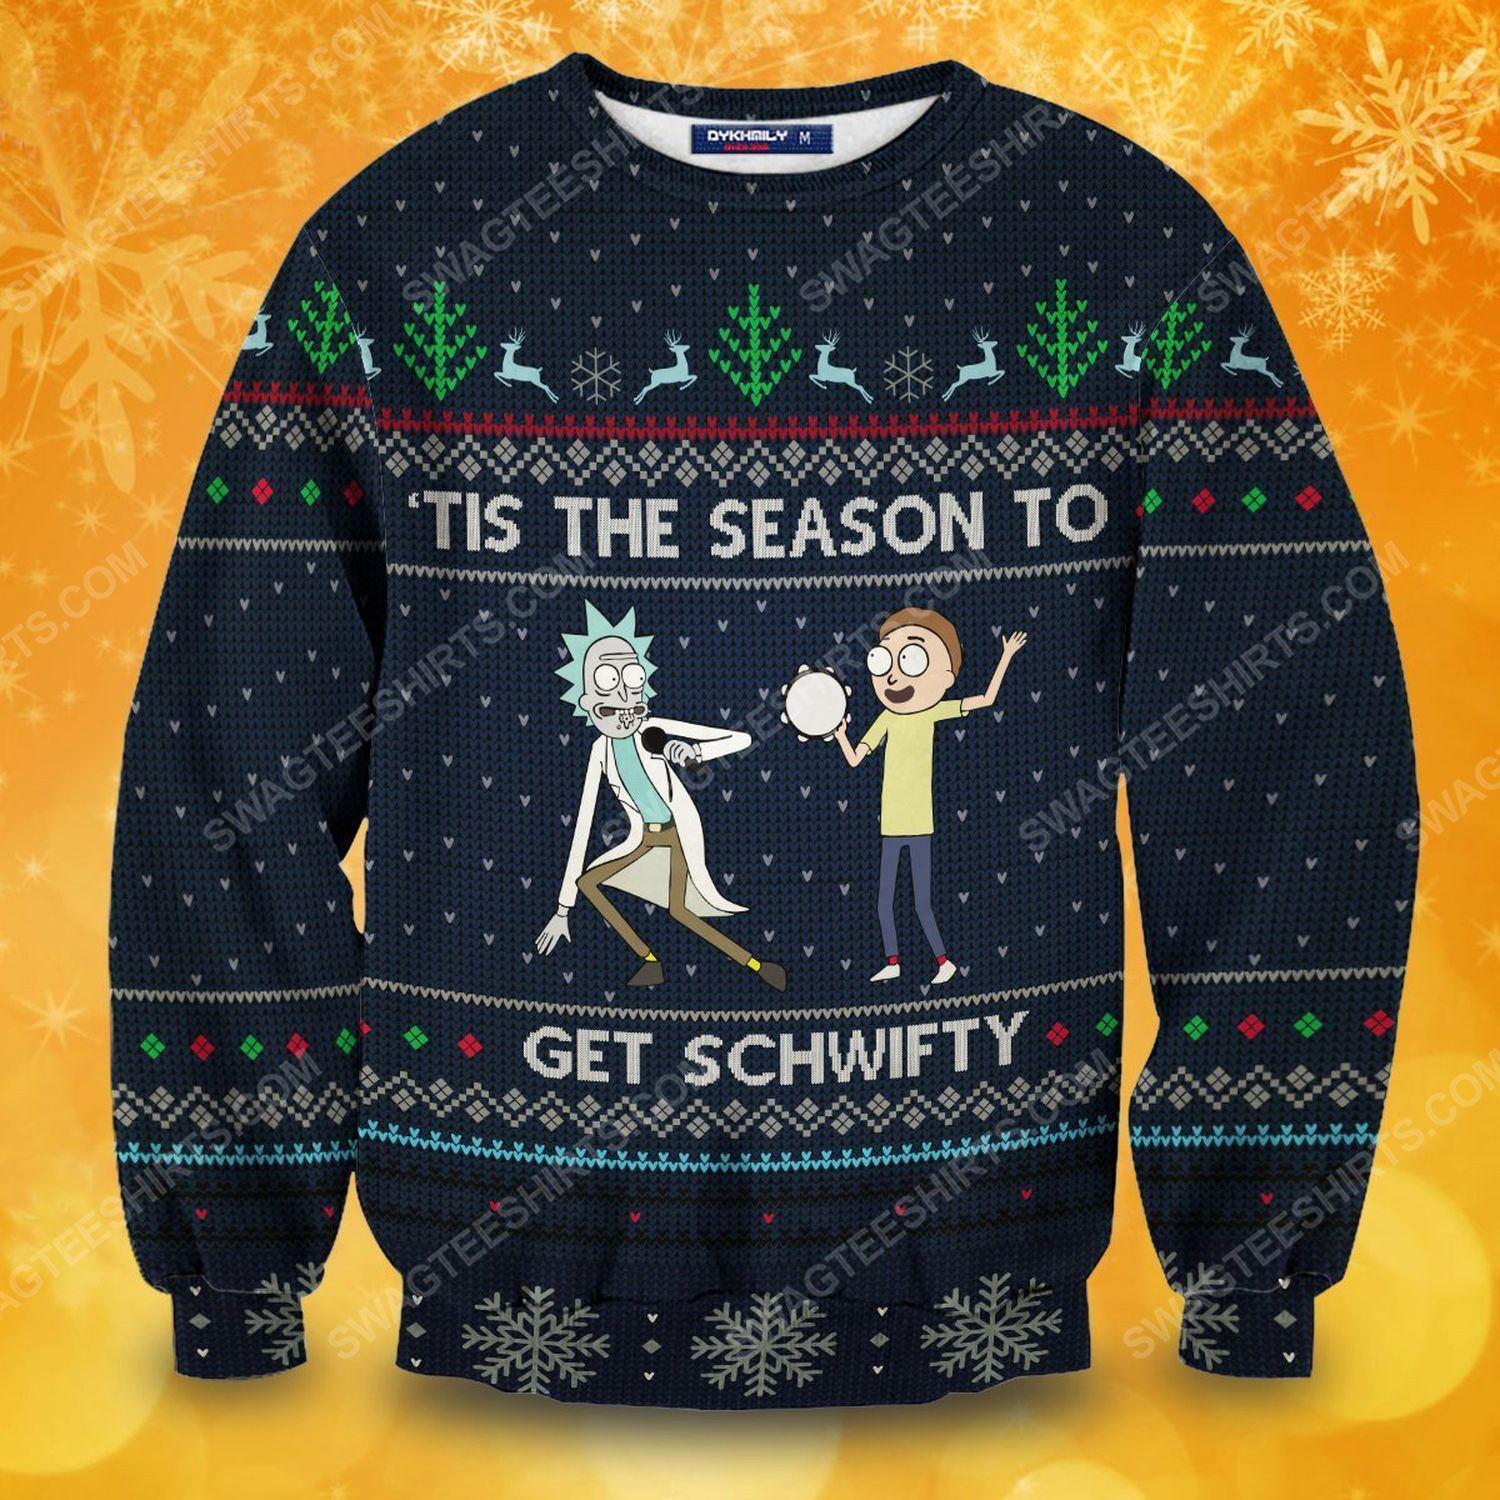 Tis the season to get schwifty rick and morty full print ugly christmas sweater 1